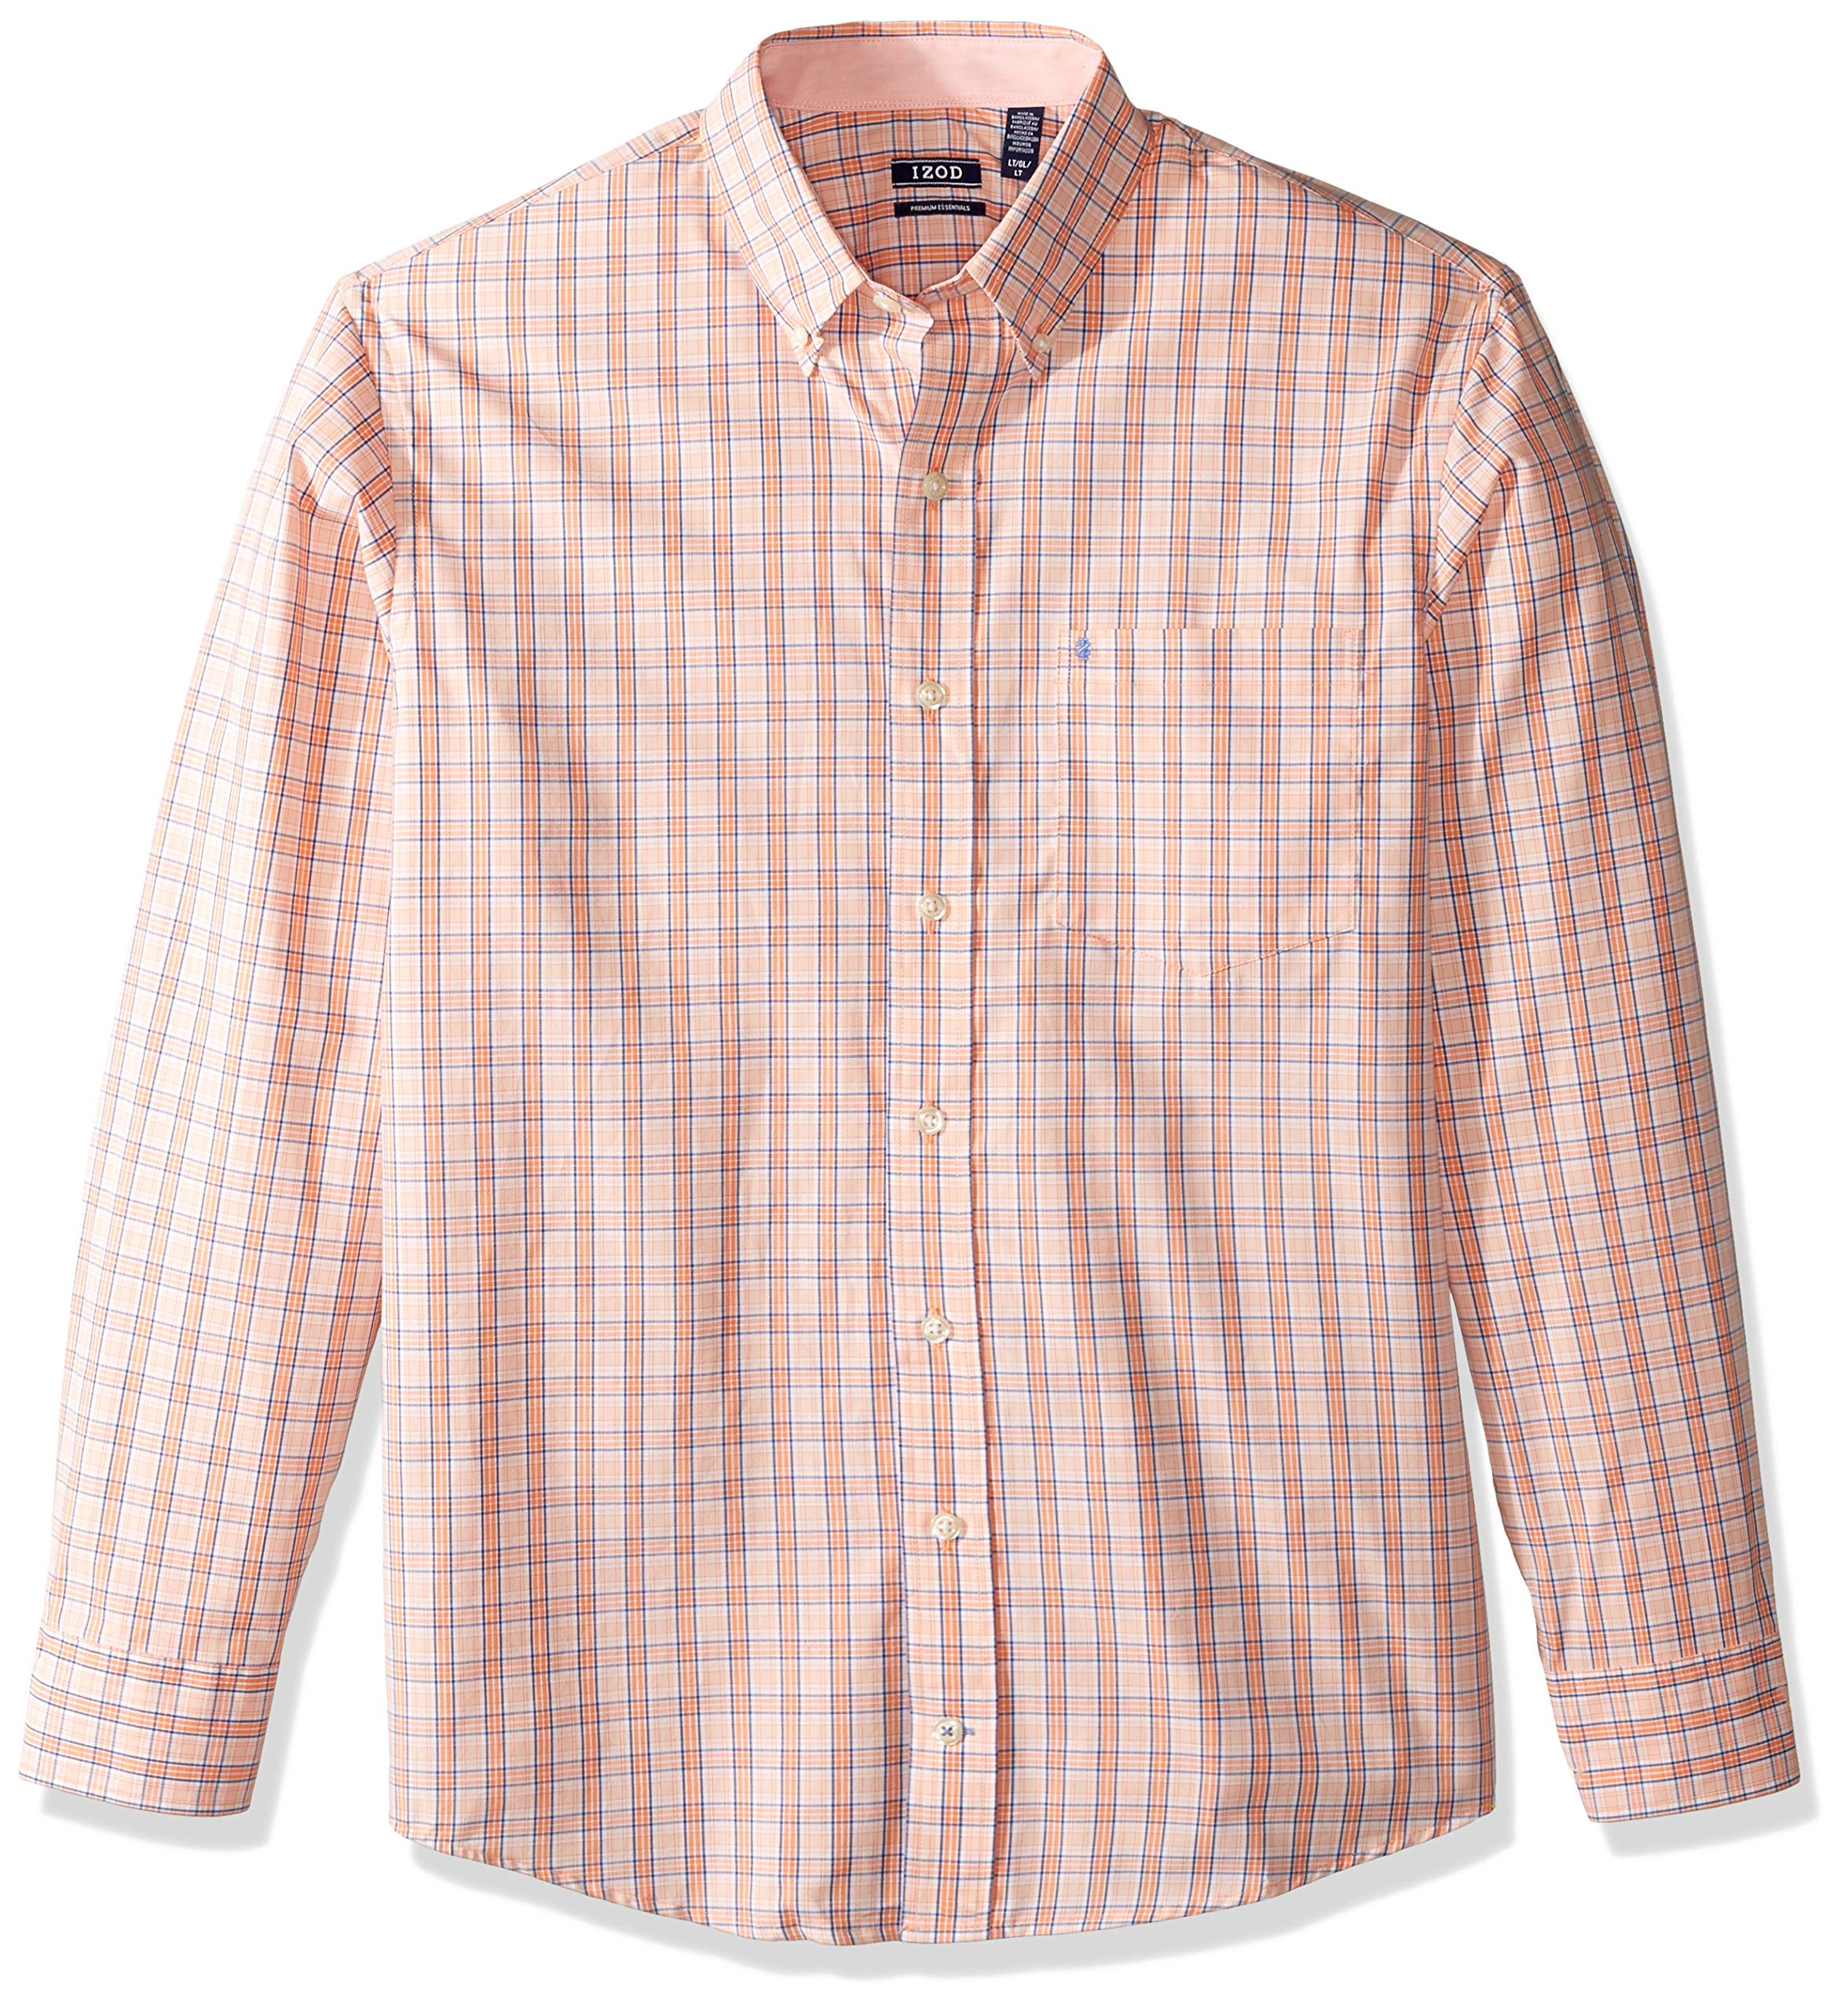 IZOD Men's Big and Tall Button Down Long Sleeve Stretch Performance Plaid Shirt, Melon, 3X-Large